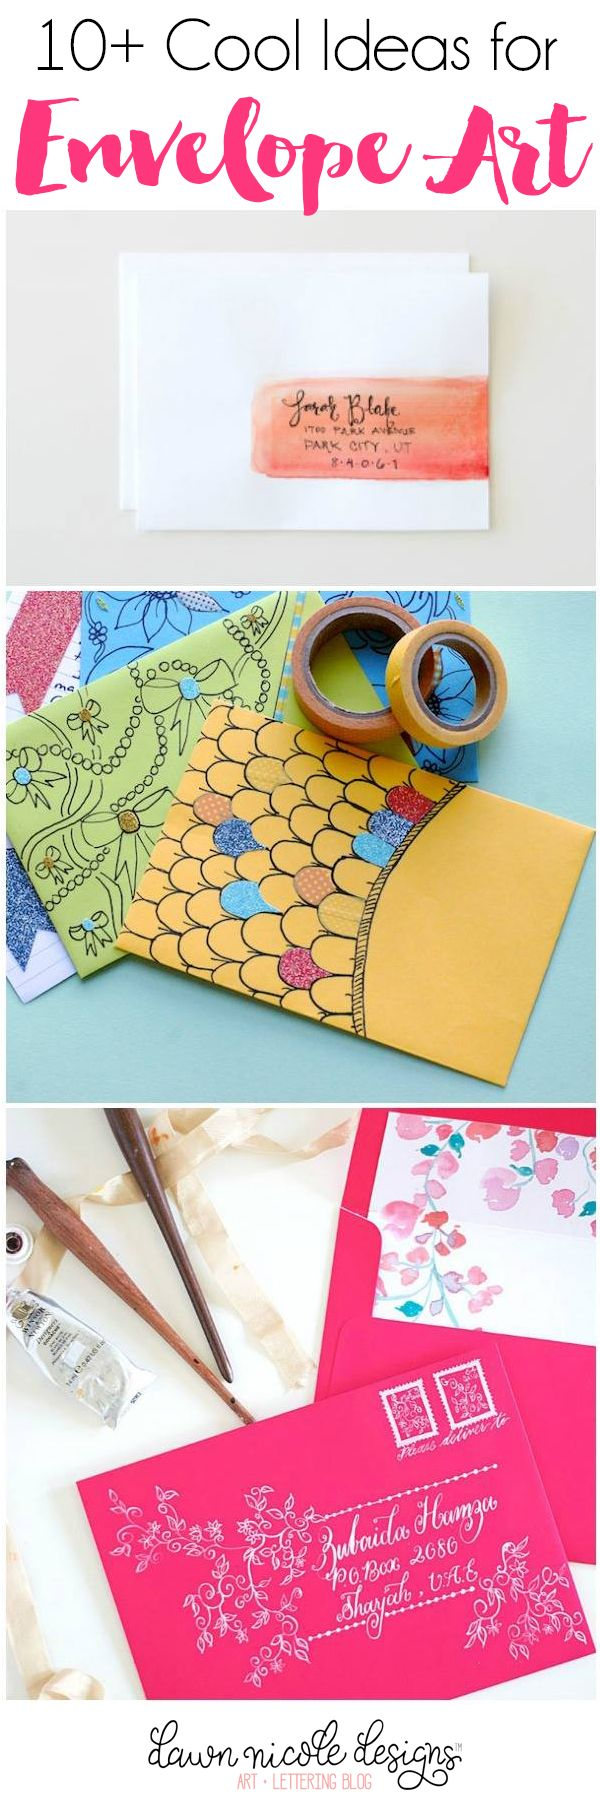 10+ Cool Envelope Addressing Projects